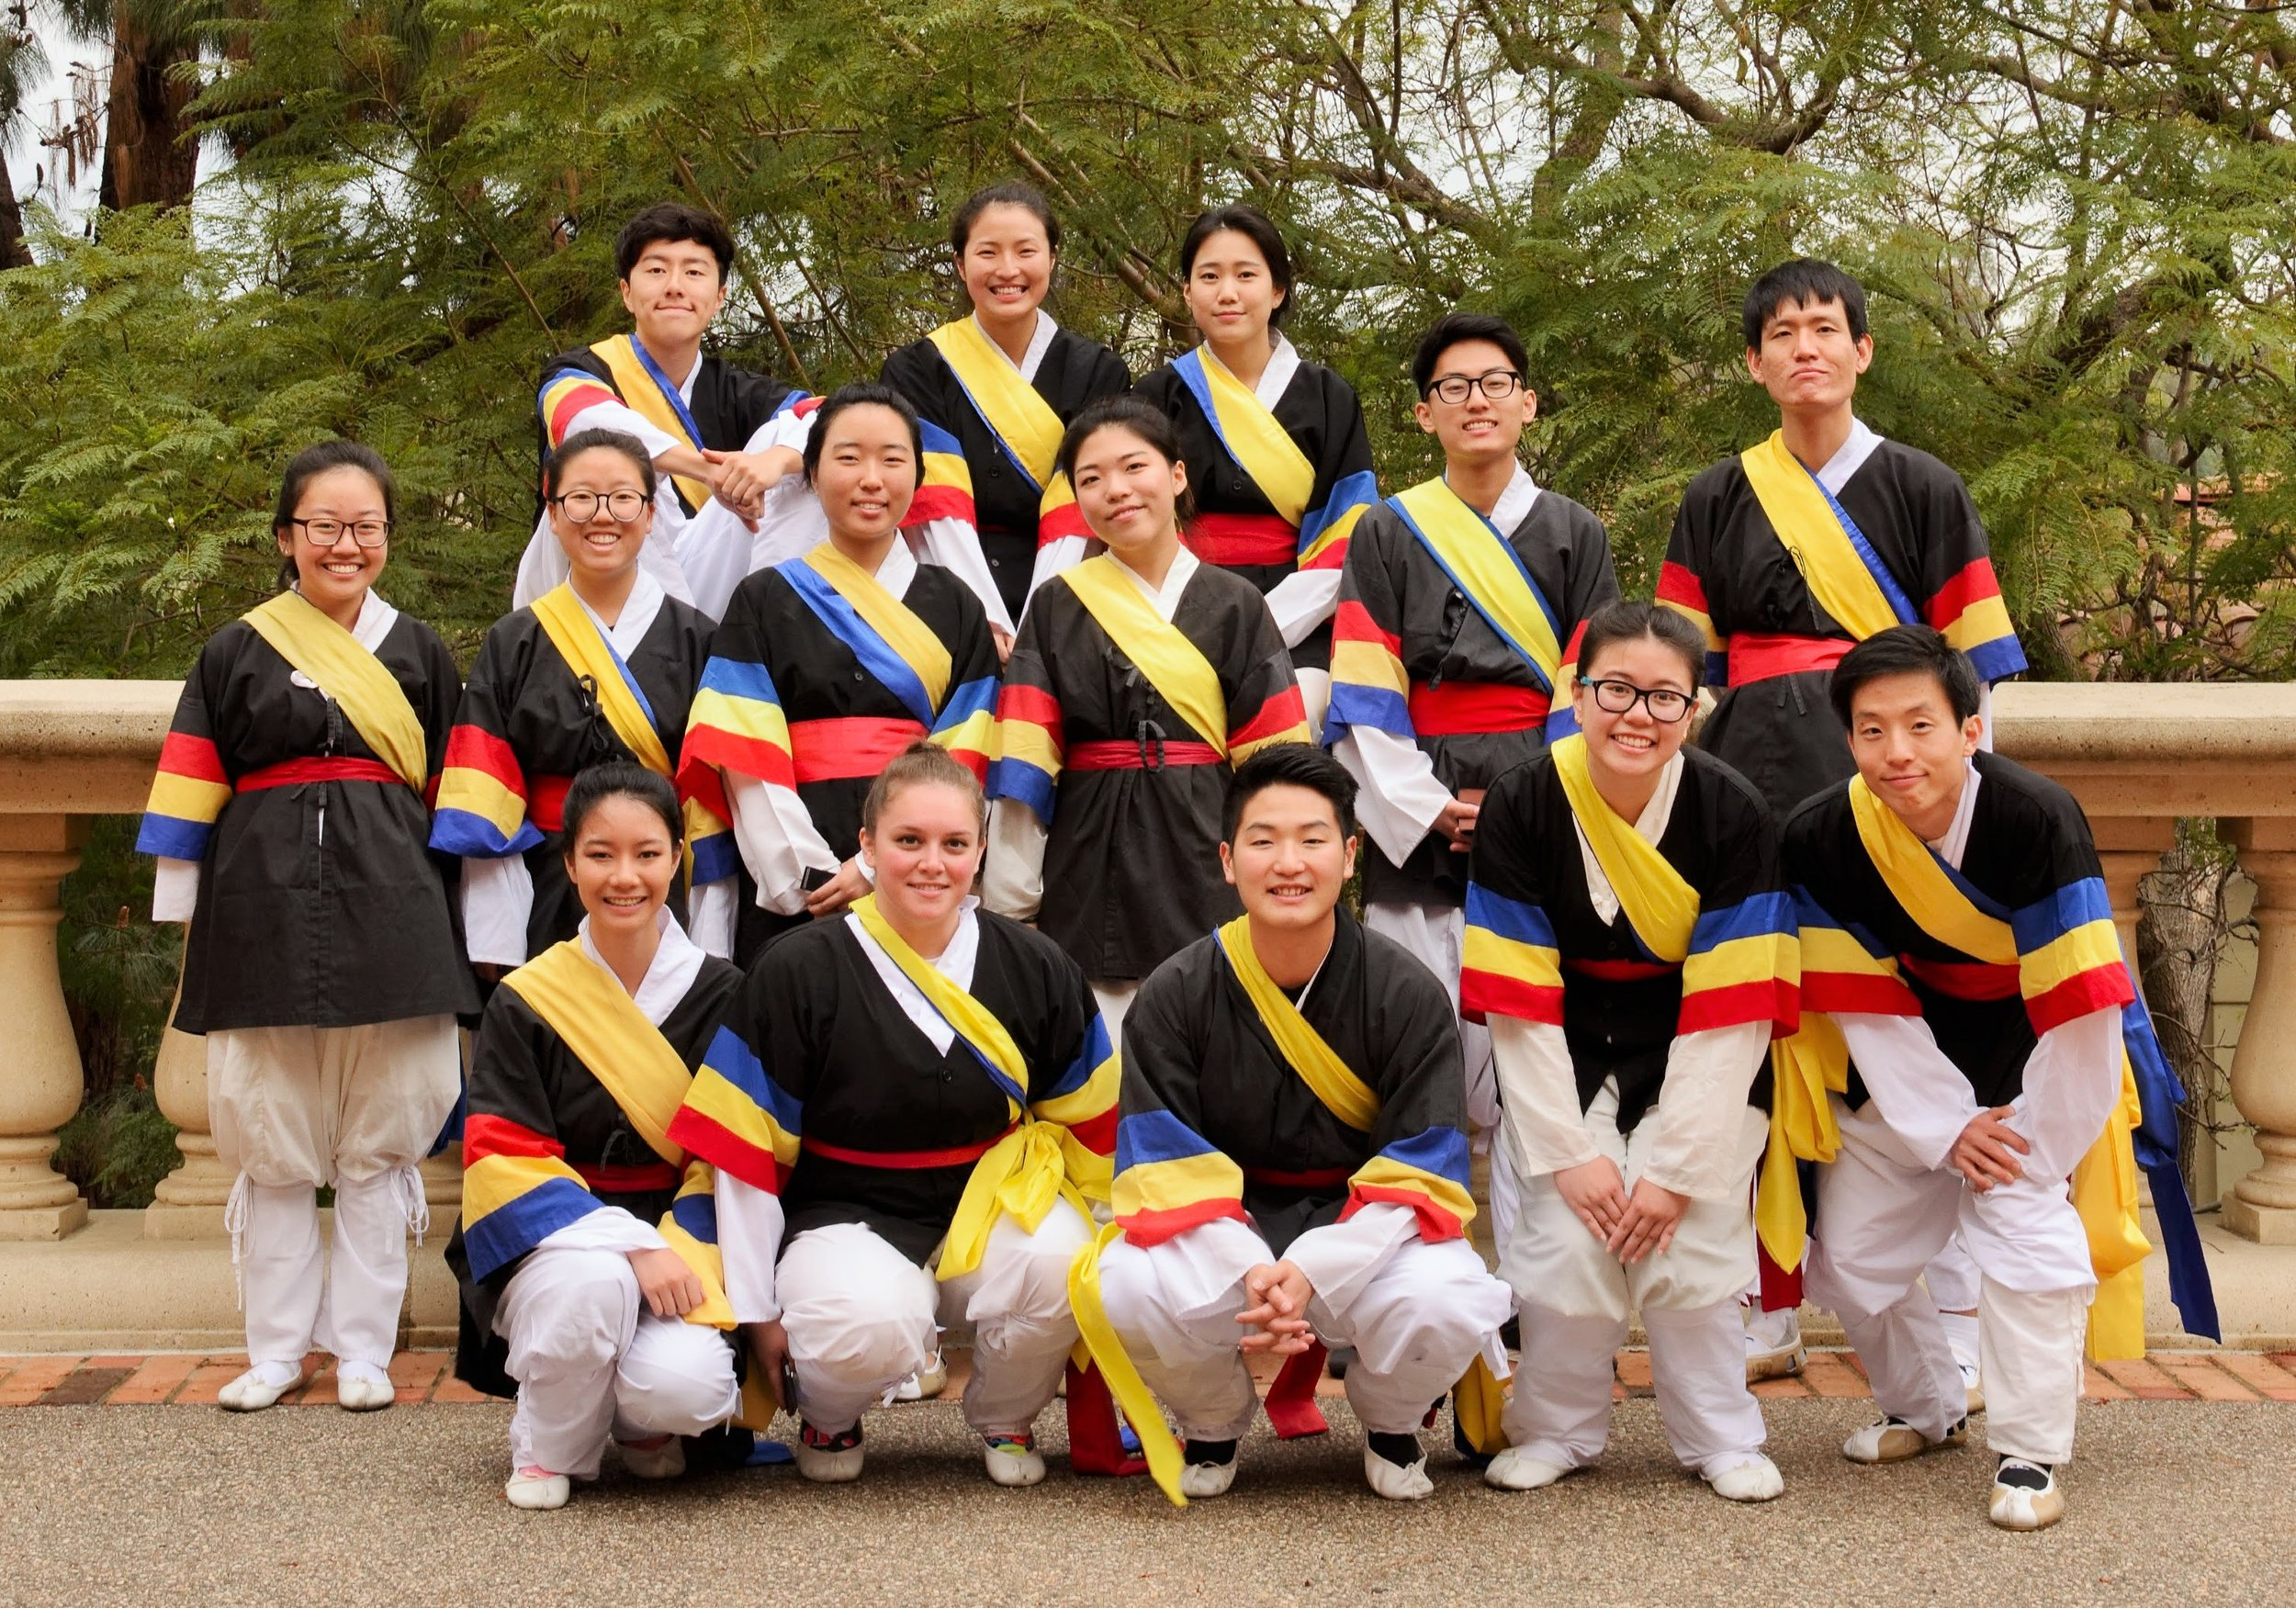 Hanoolim-Korean Cultural Awareness Group   Hanoolim Korean Cultural Awarenss Group is the only UCLA student organization dedicated to promoting Korean traditional and modern culture. Poongmul is the branch of Hanoolim that continues to uphold Korean traditional drumming; students learn and practice throughout the school year to prepare for performances at the Koreatown Lunar New Year March (Jishinbalpki), Korean Culture Night, the Asian Pacific Heritage Month festival, and other events in Los Angeles. Hanoolim Poongmul provides an opportunity for Korean students to appreciate their culture, and for all students of various ethnic heritages to experience the Korean tradition.